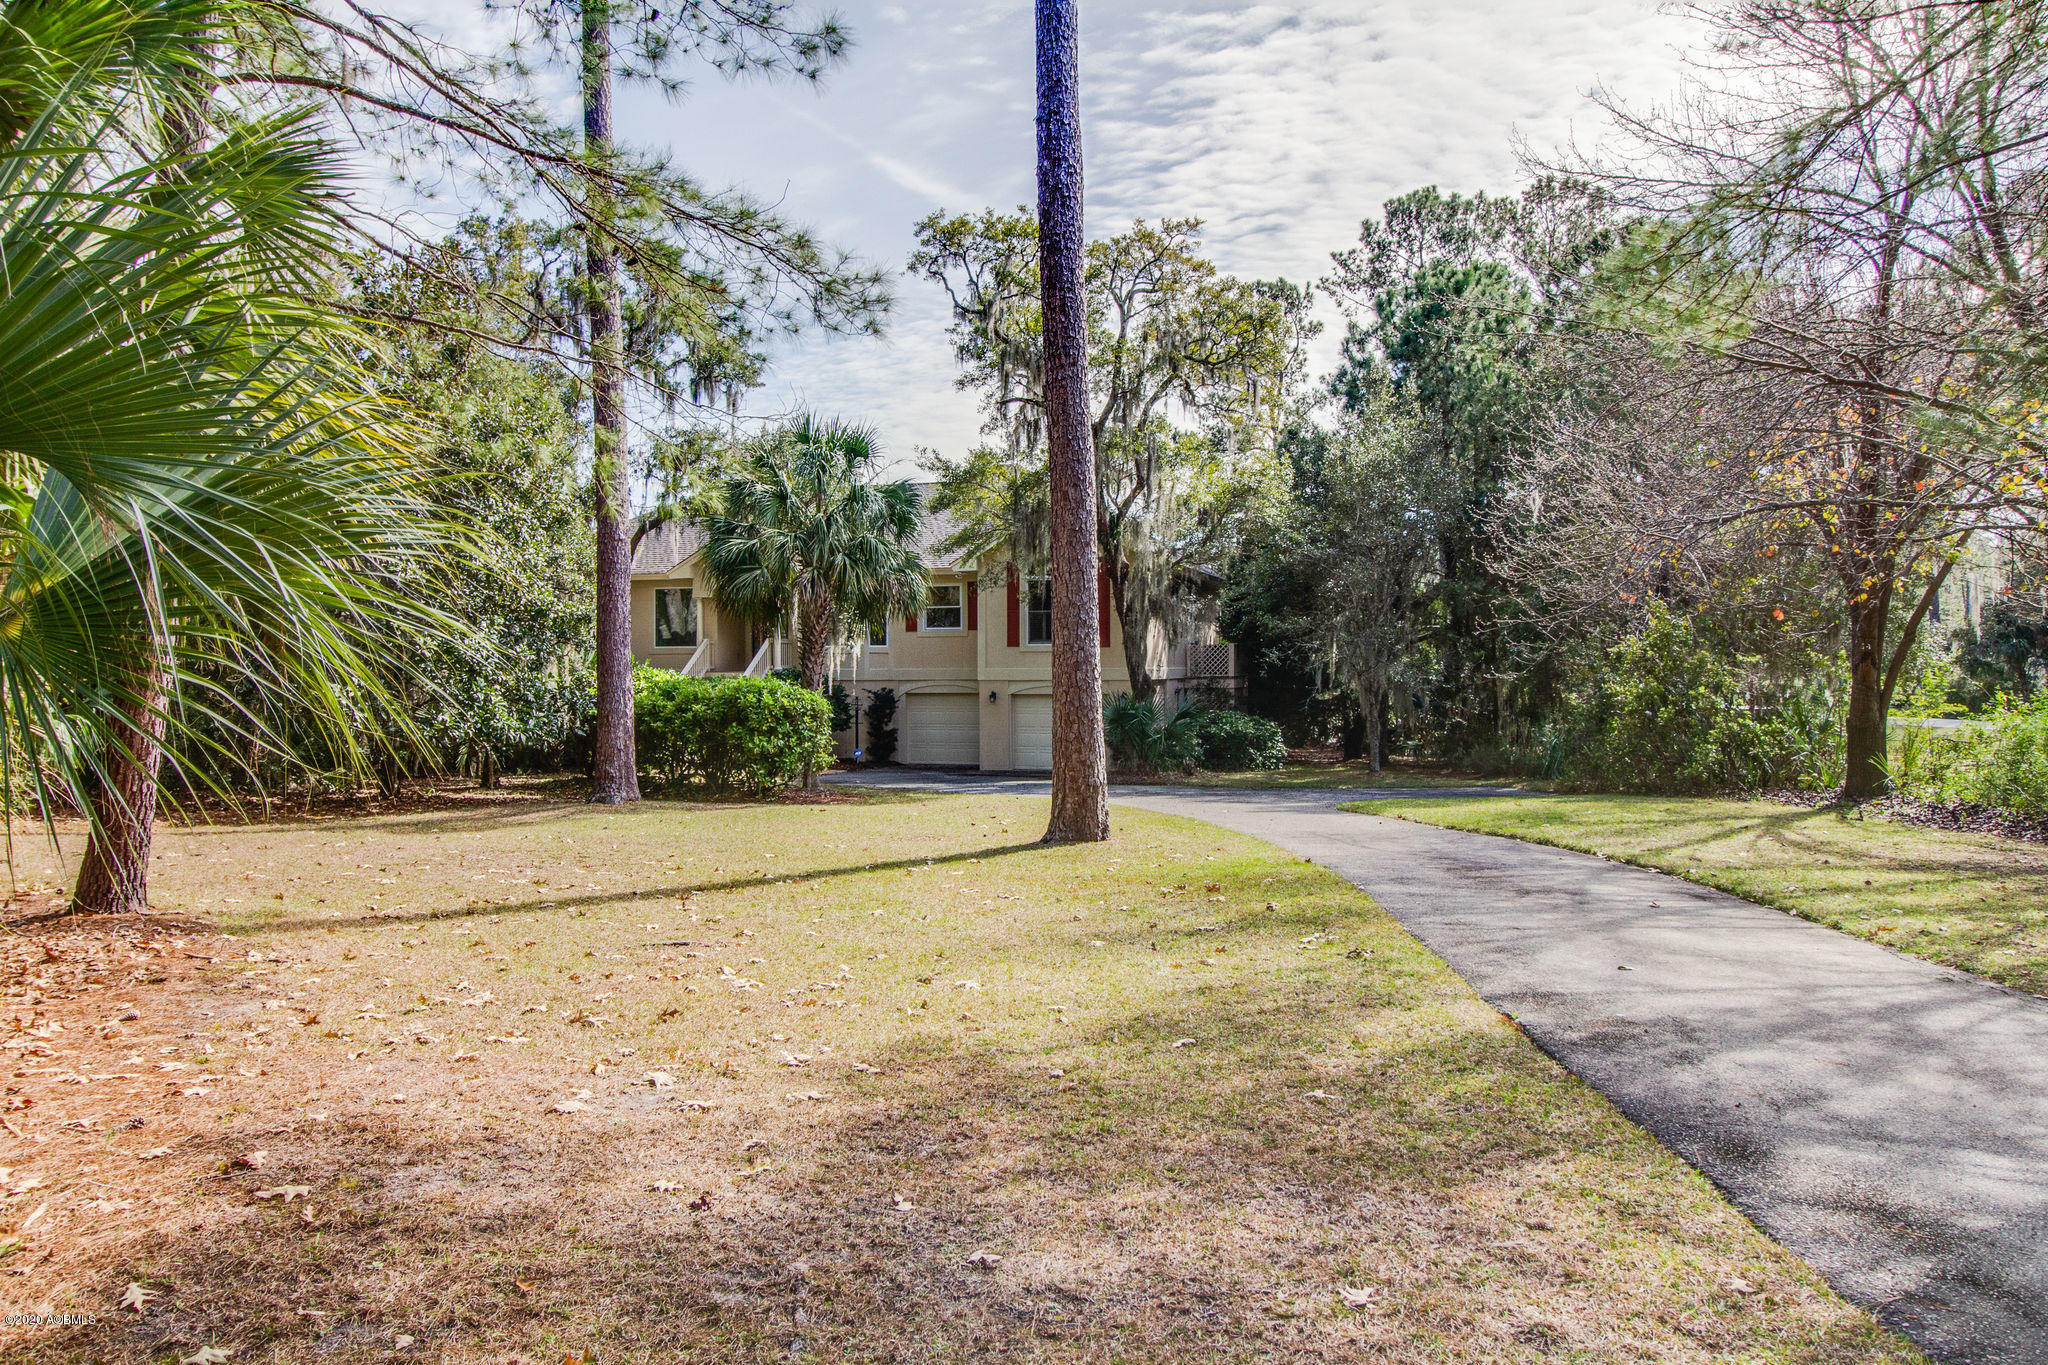 Photo of 2 S Oak Forest Drive, Callawassie Island, SC 29909